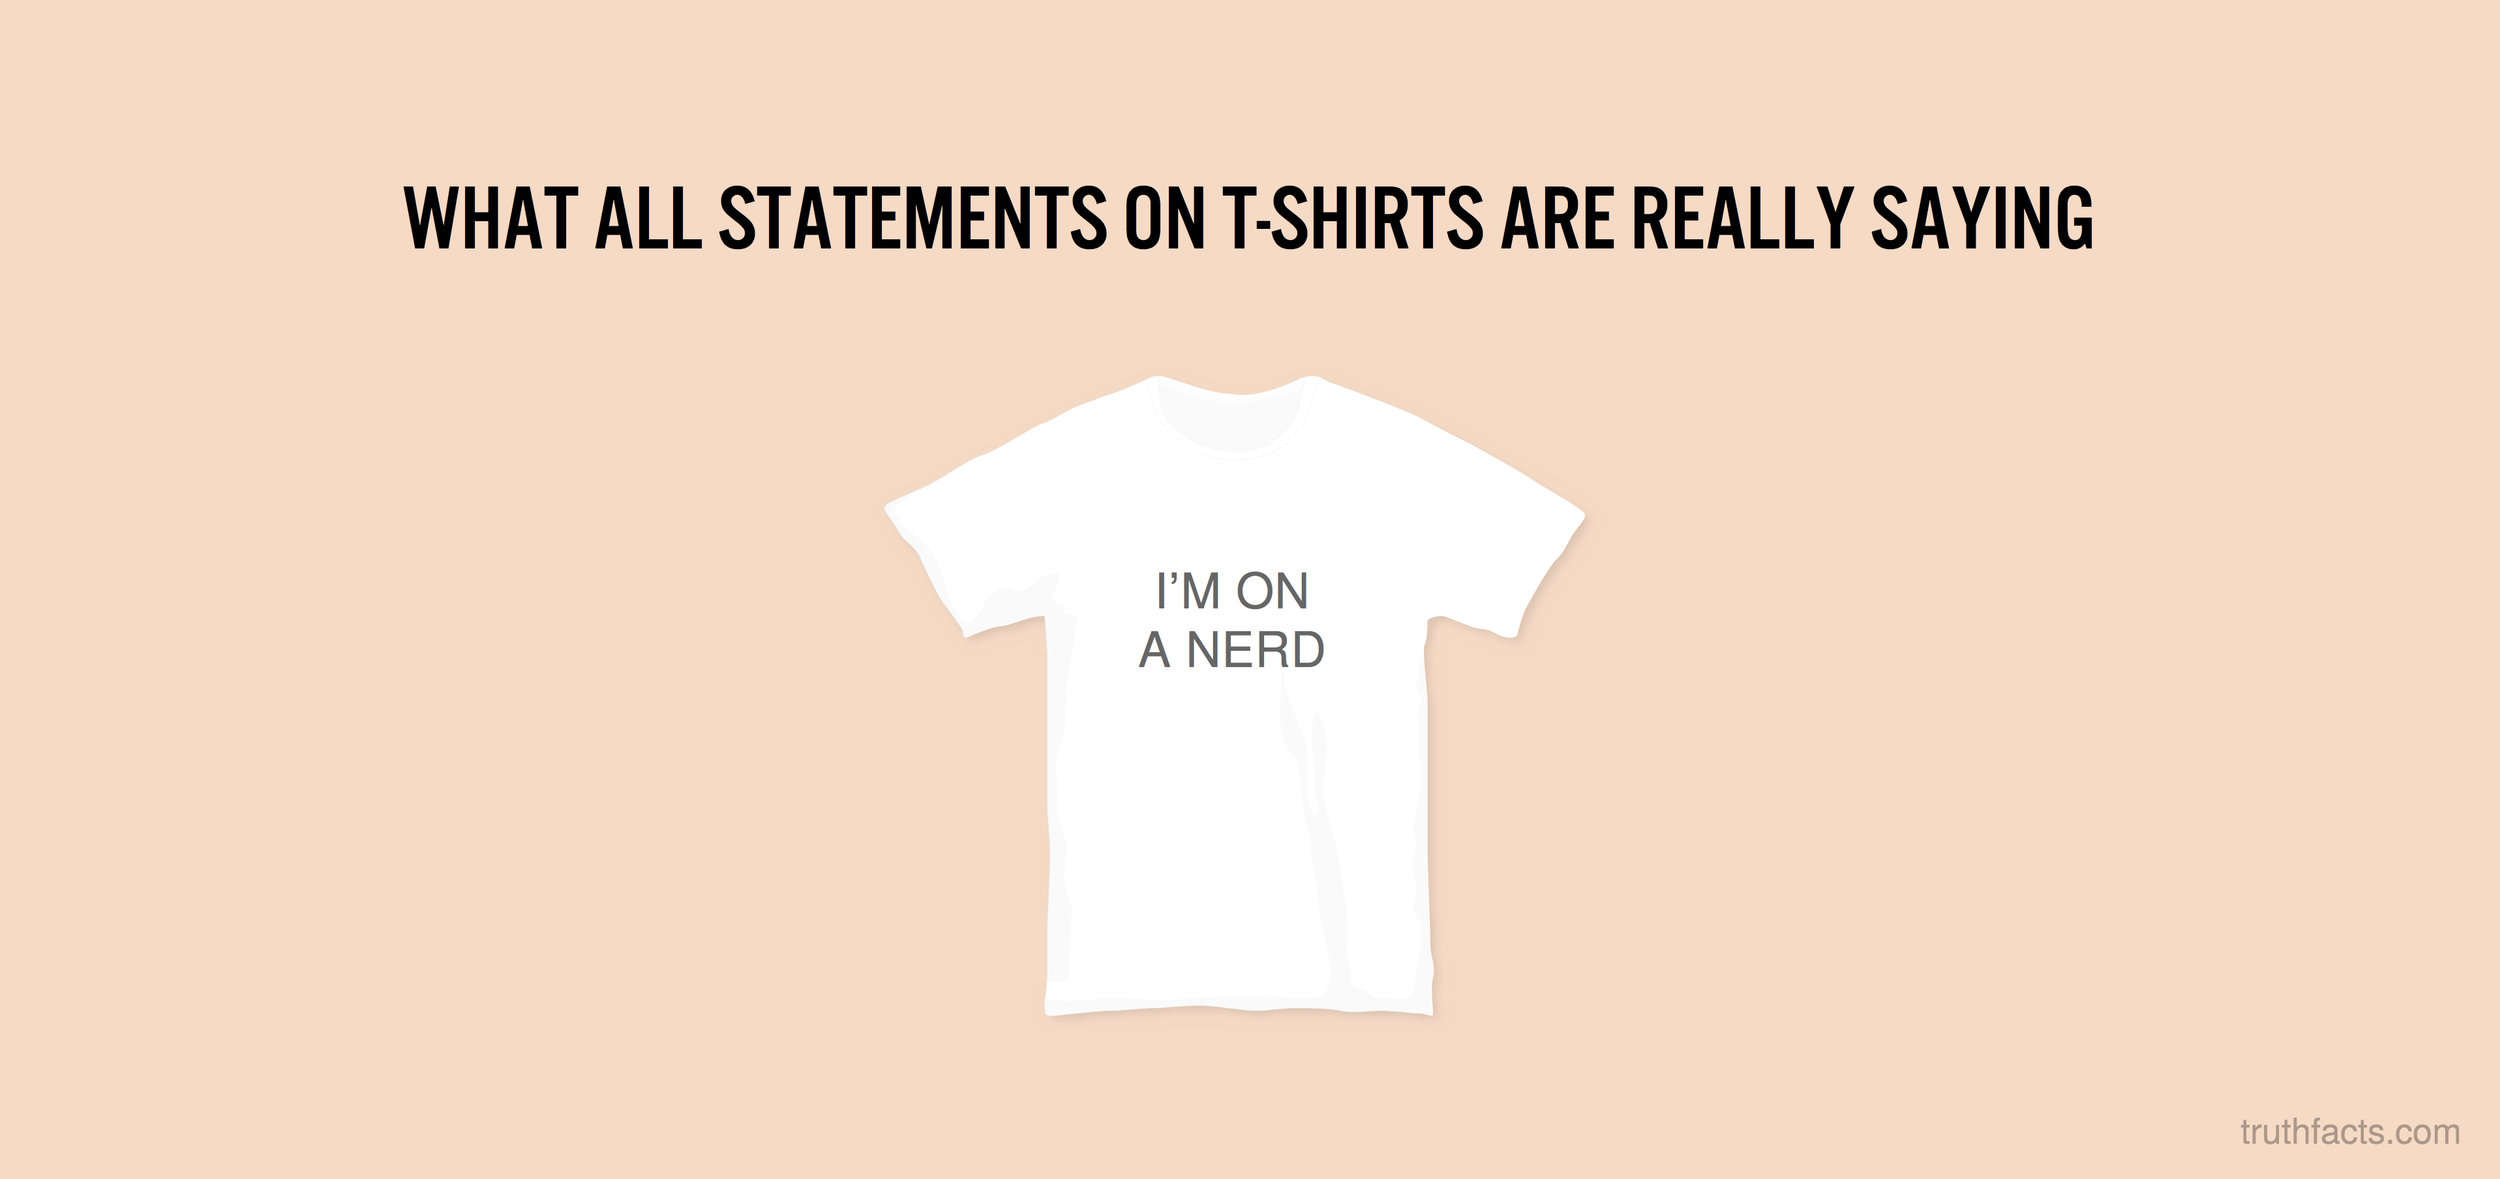 What all statements on t-shirts are really saying